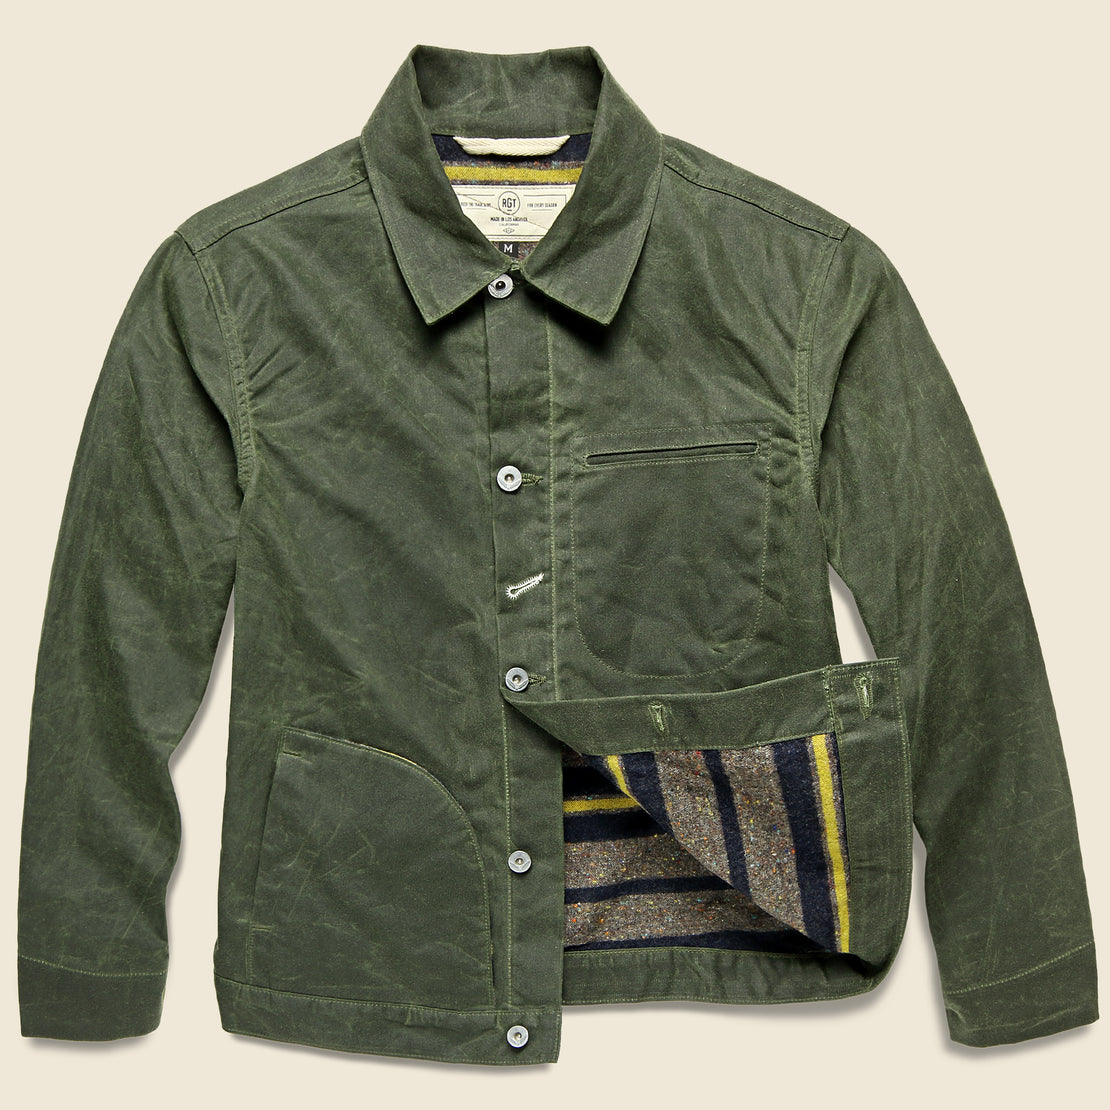 Rogue Territory Supply Jacket - Blanket Lined Waxed Olive Ridgeline